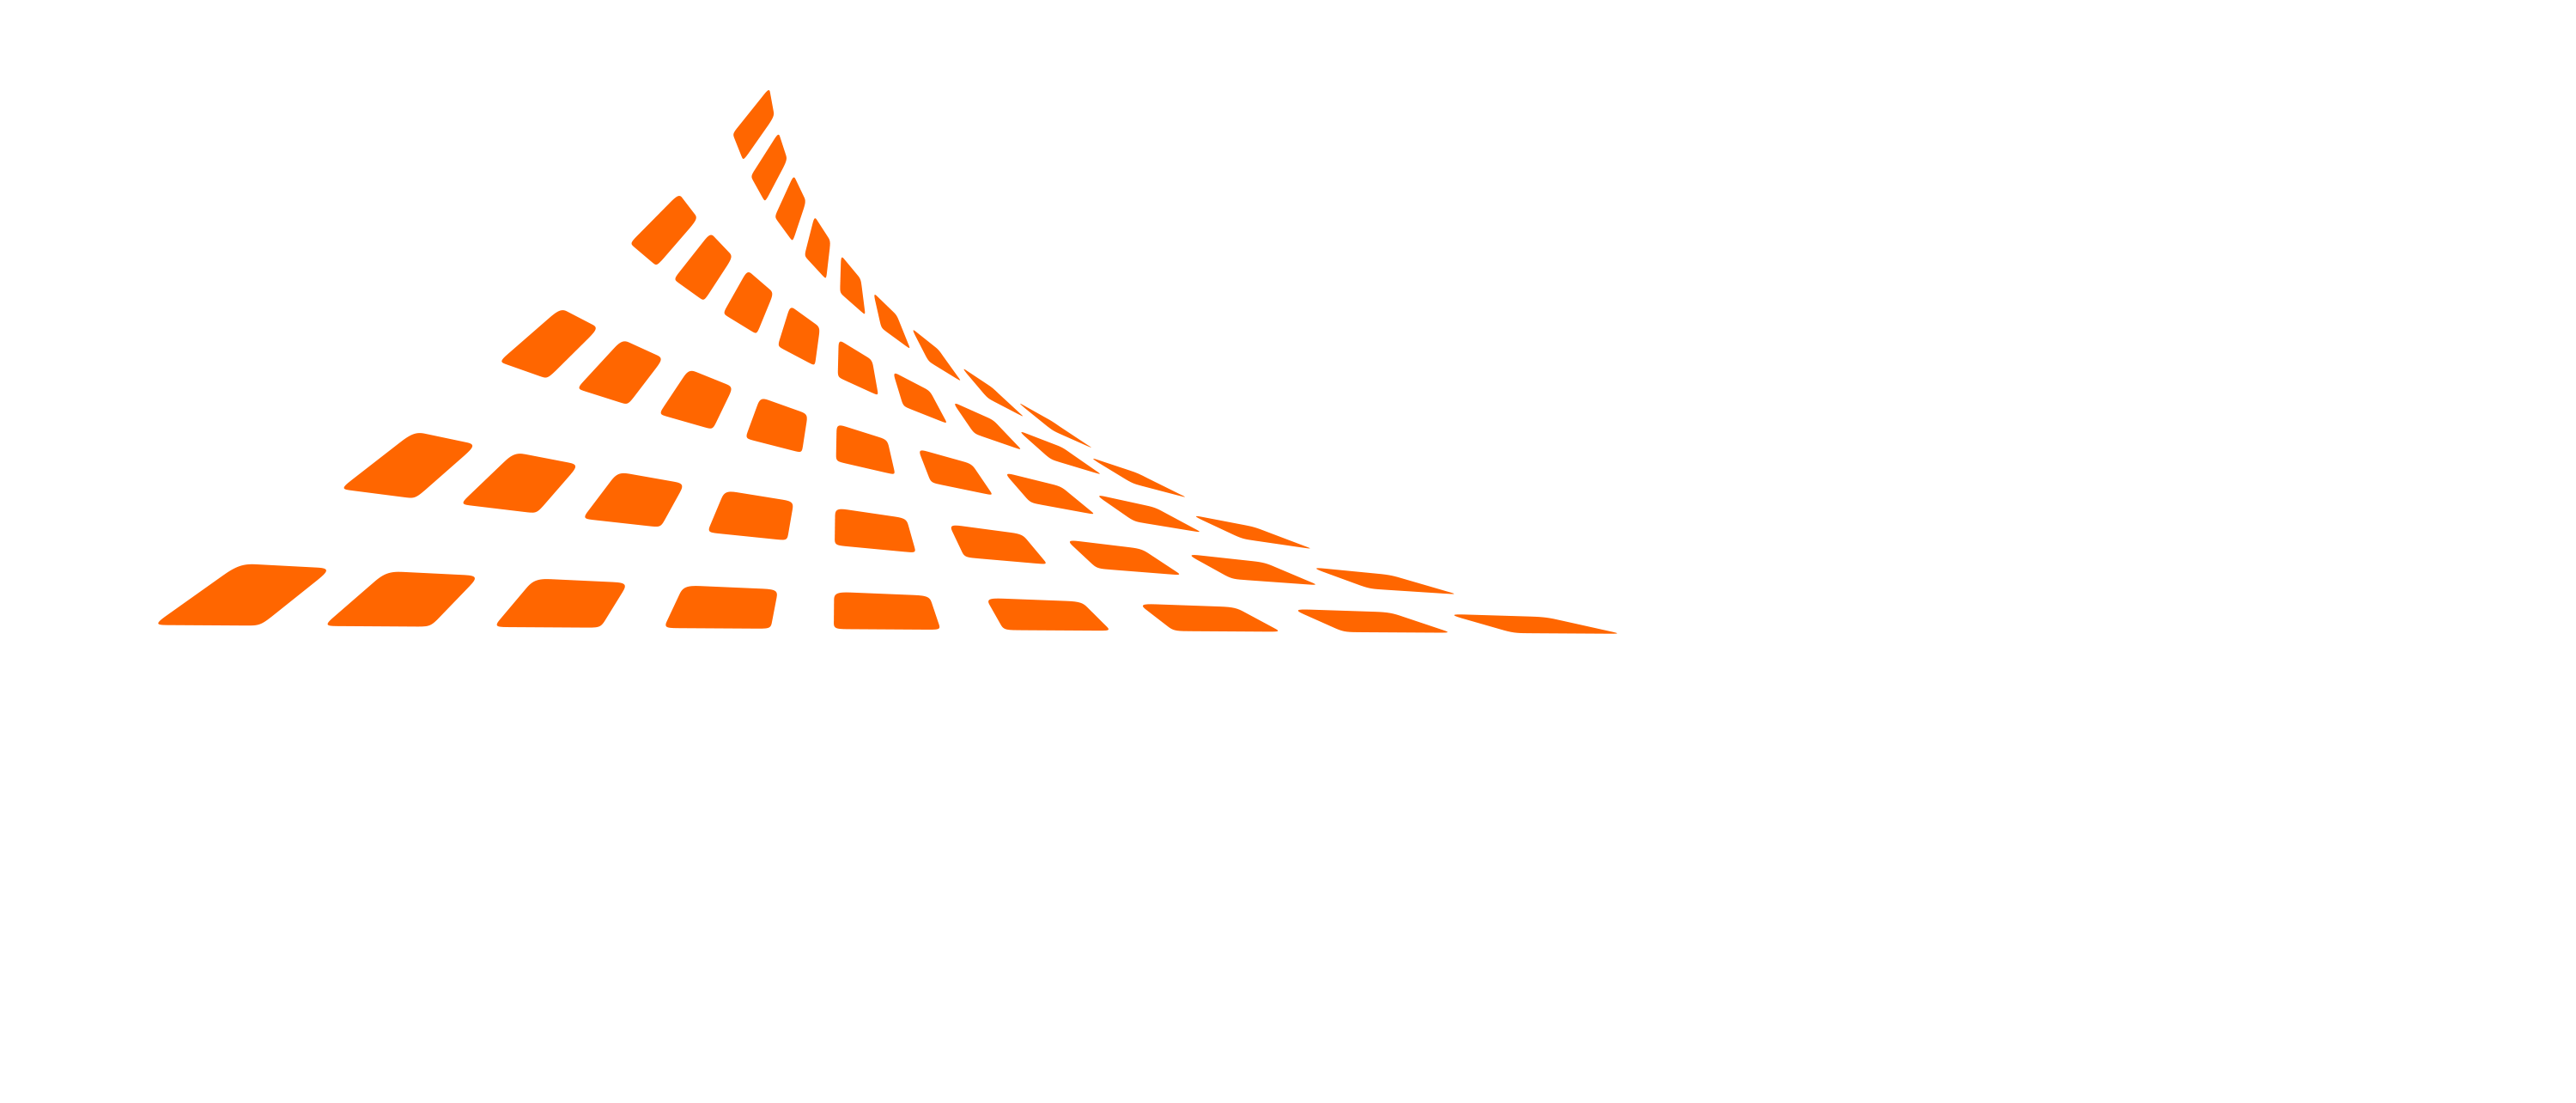 Dreamhack Denver 2017 talent revealed